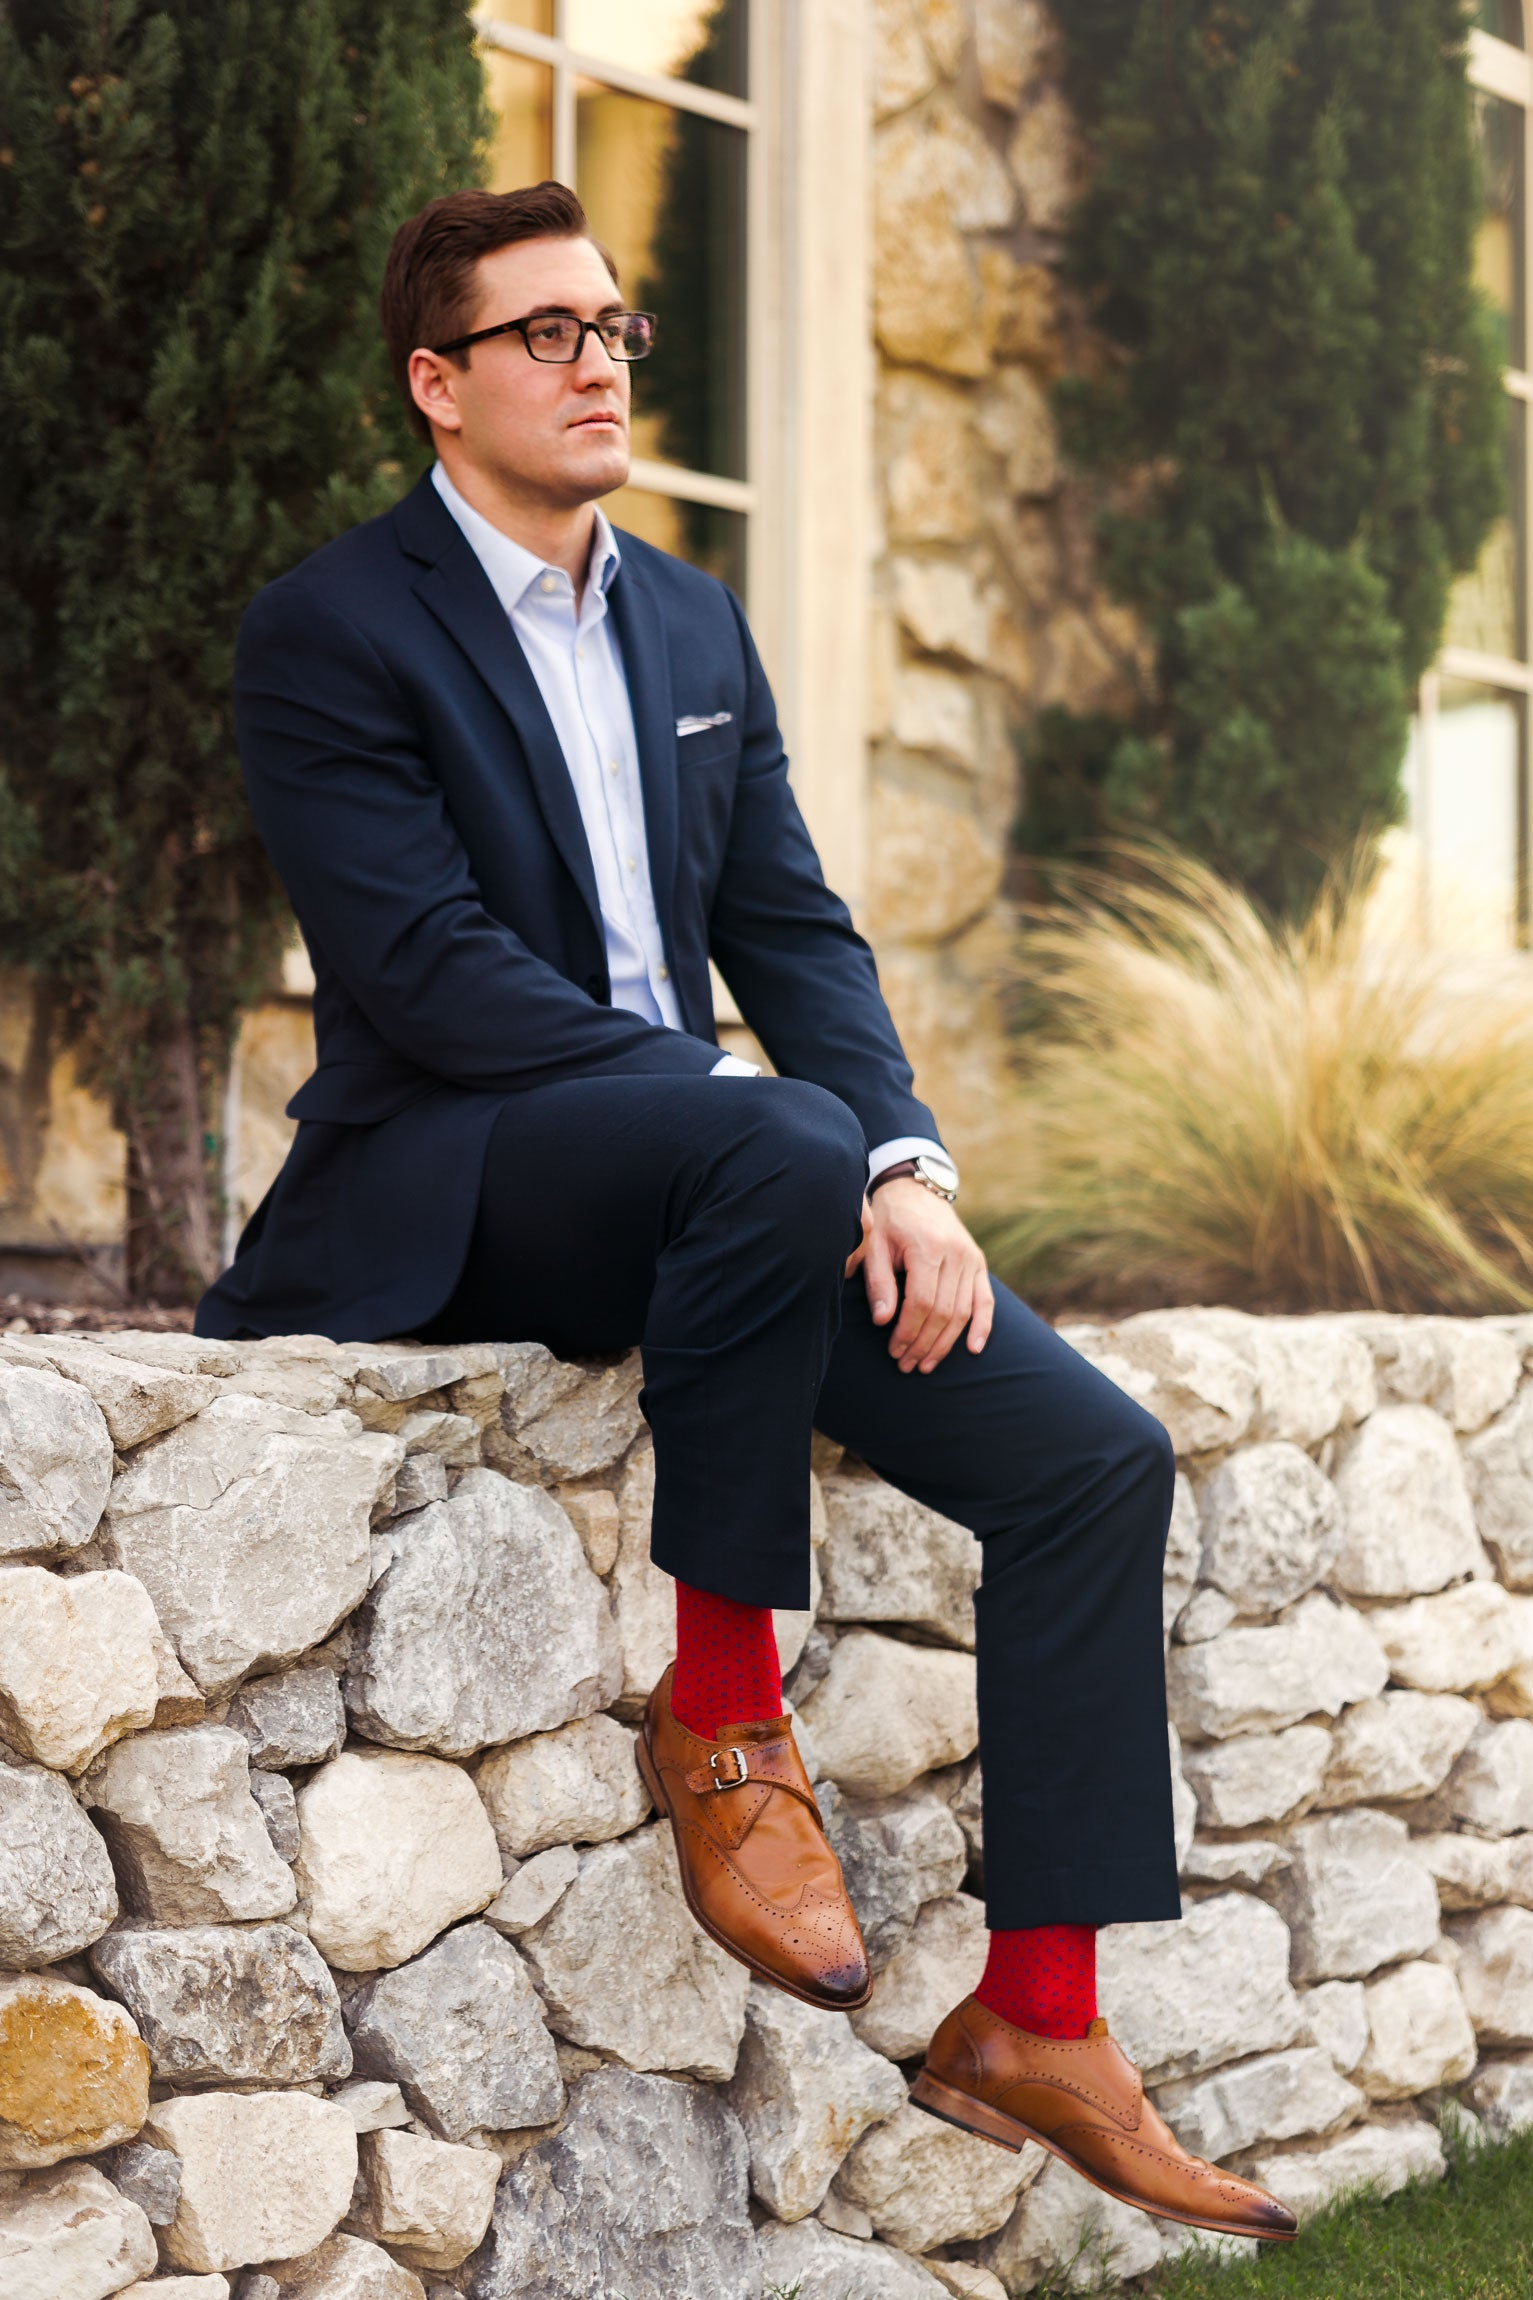 Man in suit shows off awesome socks